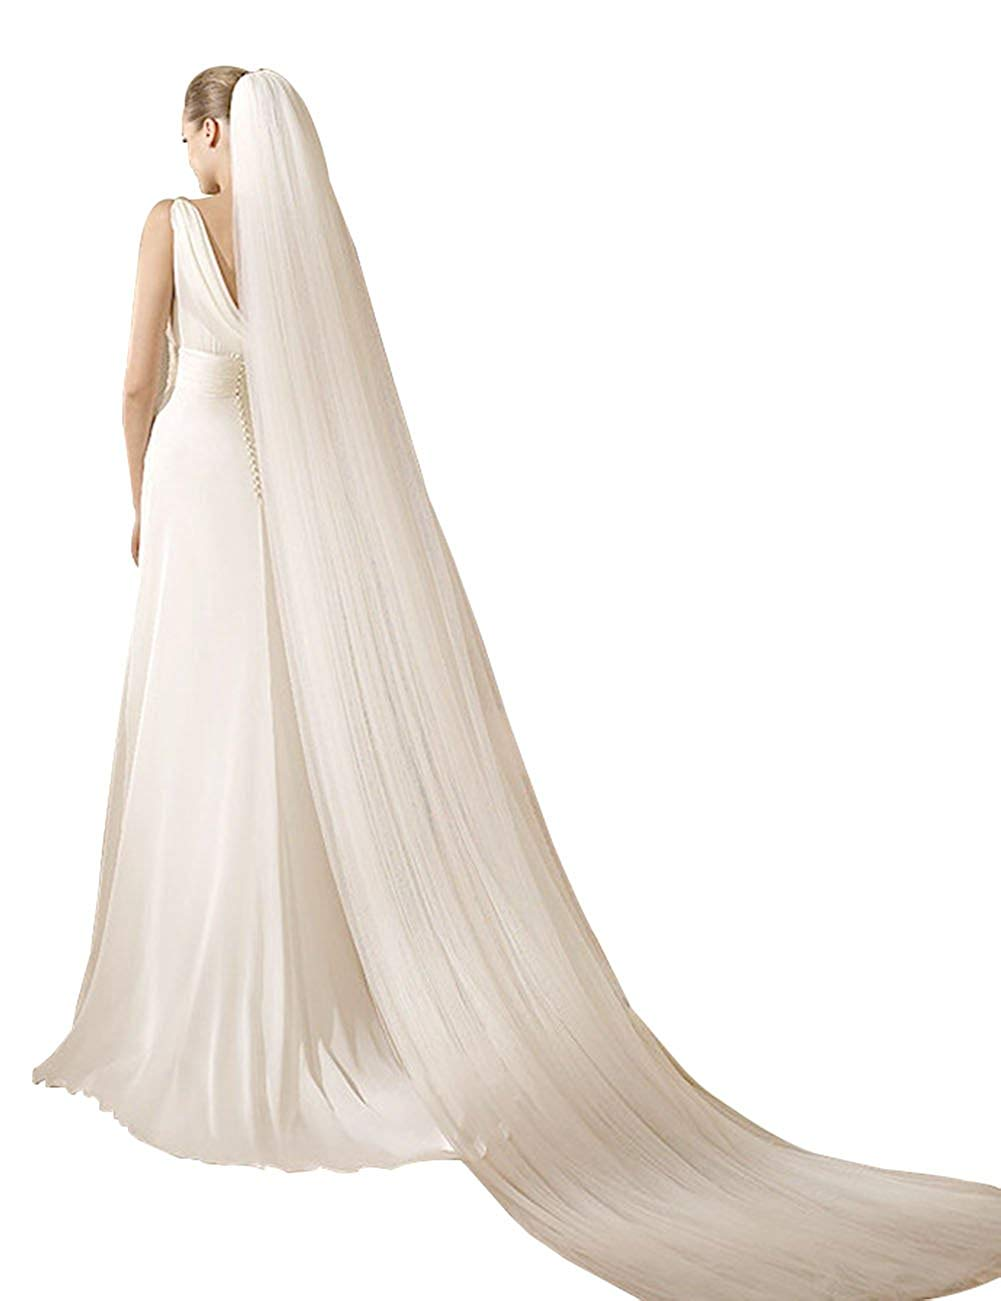 GRACIN Women's 1 Tier White Cathedral 3M Long Wedding Tulle Bridal Veil with Comb